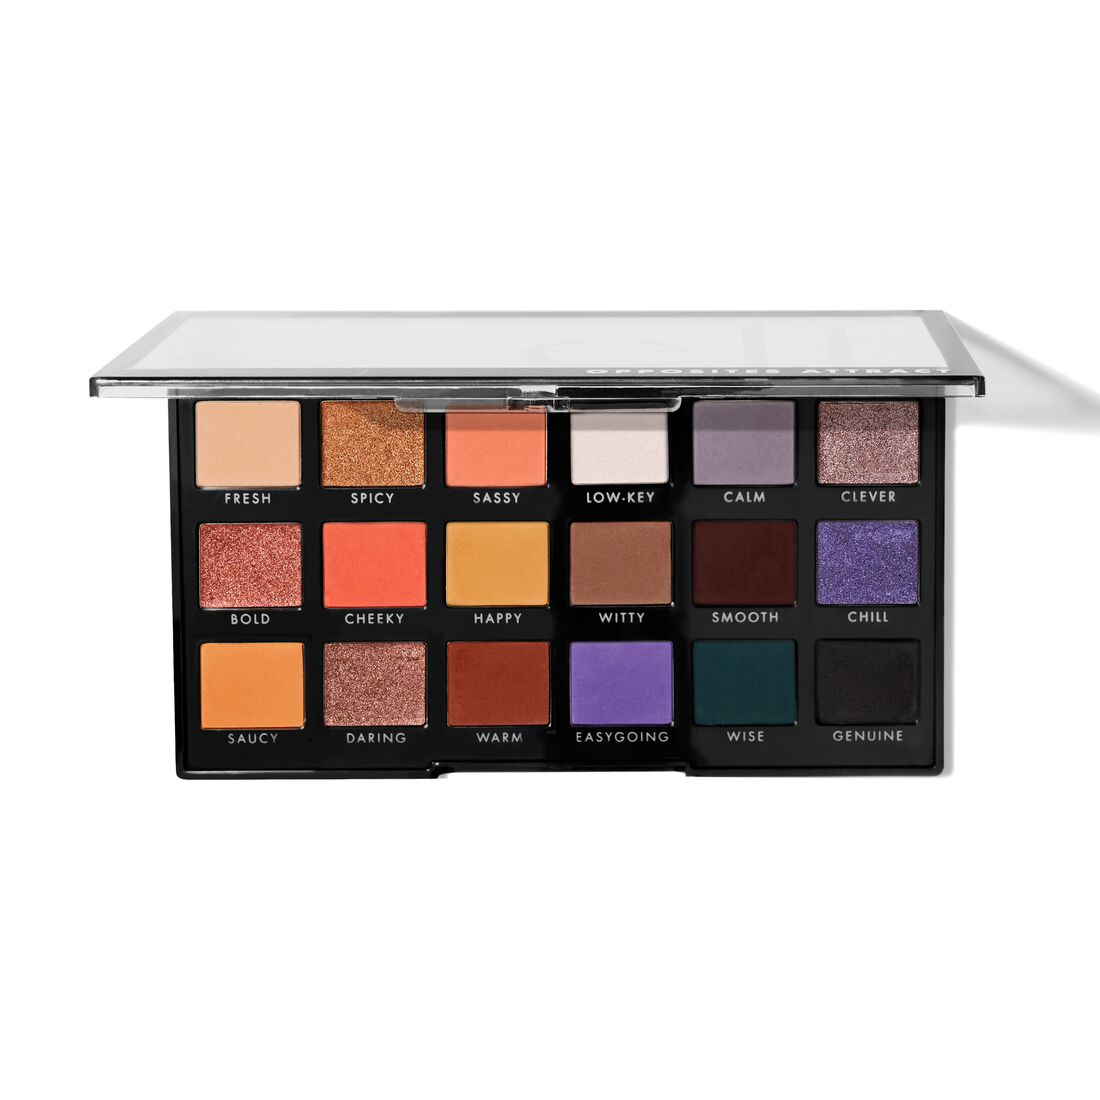 e.l.f. Cosmetics - Opposites Attract Eyeshadow Palette